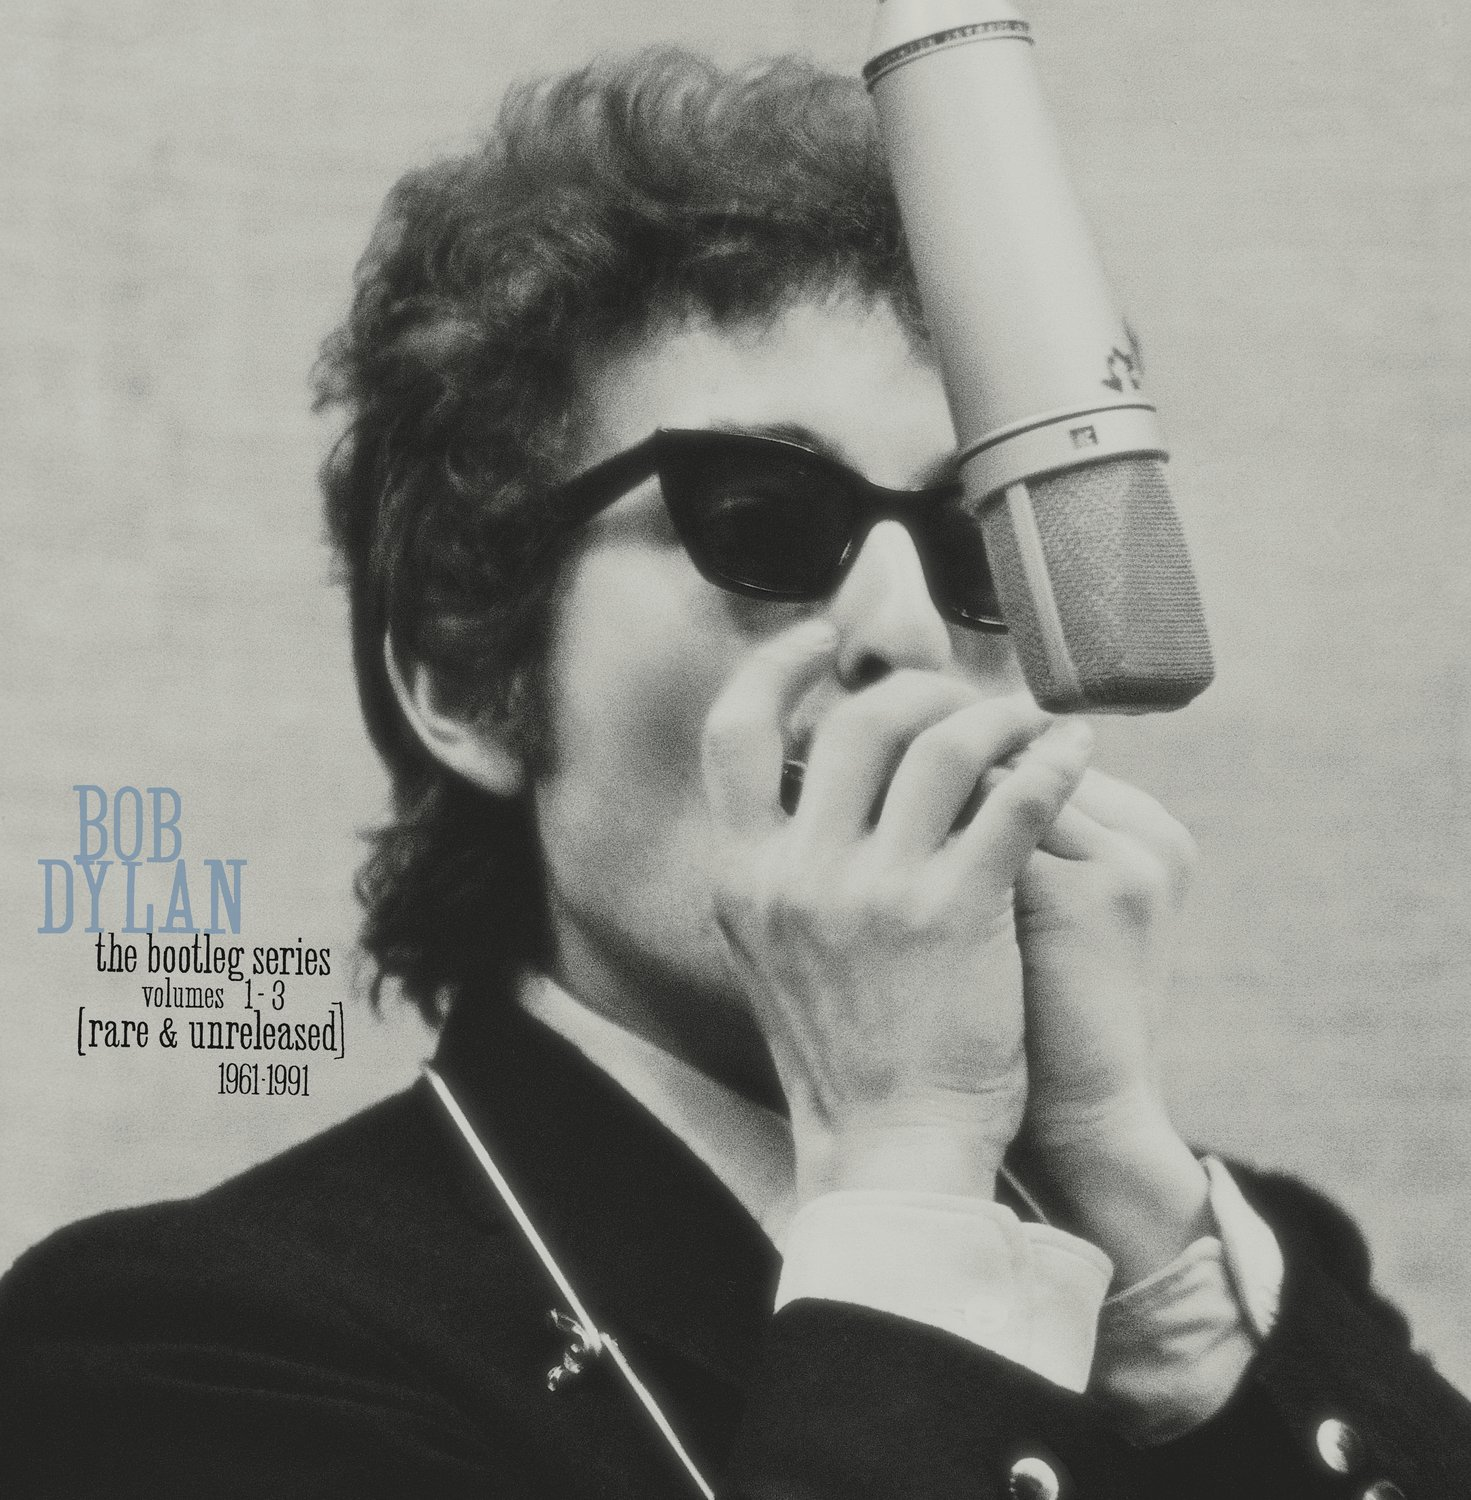 Bob Dylan: The Bootleg Series, Vols. 1-3 by Sony Legacy